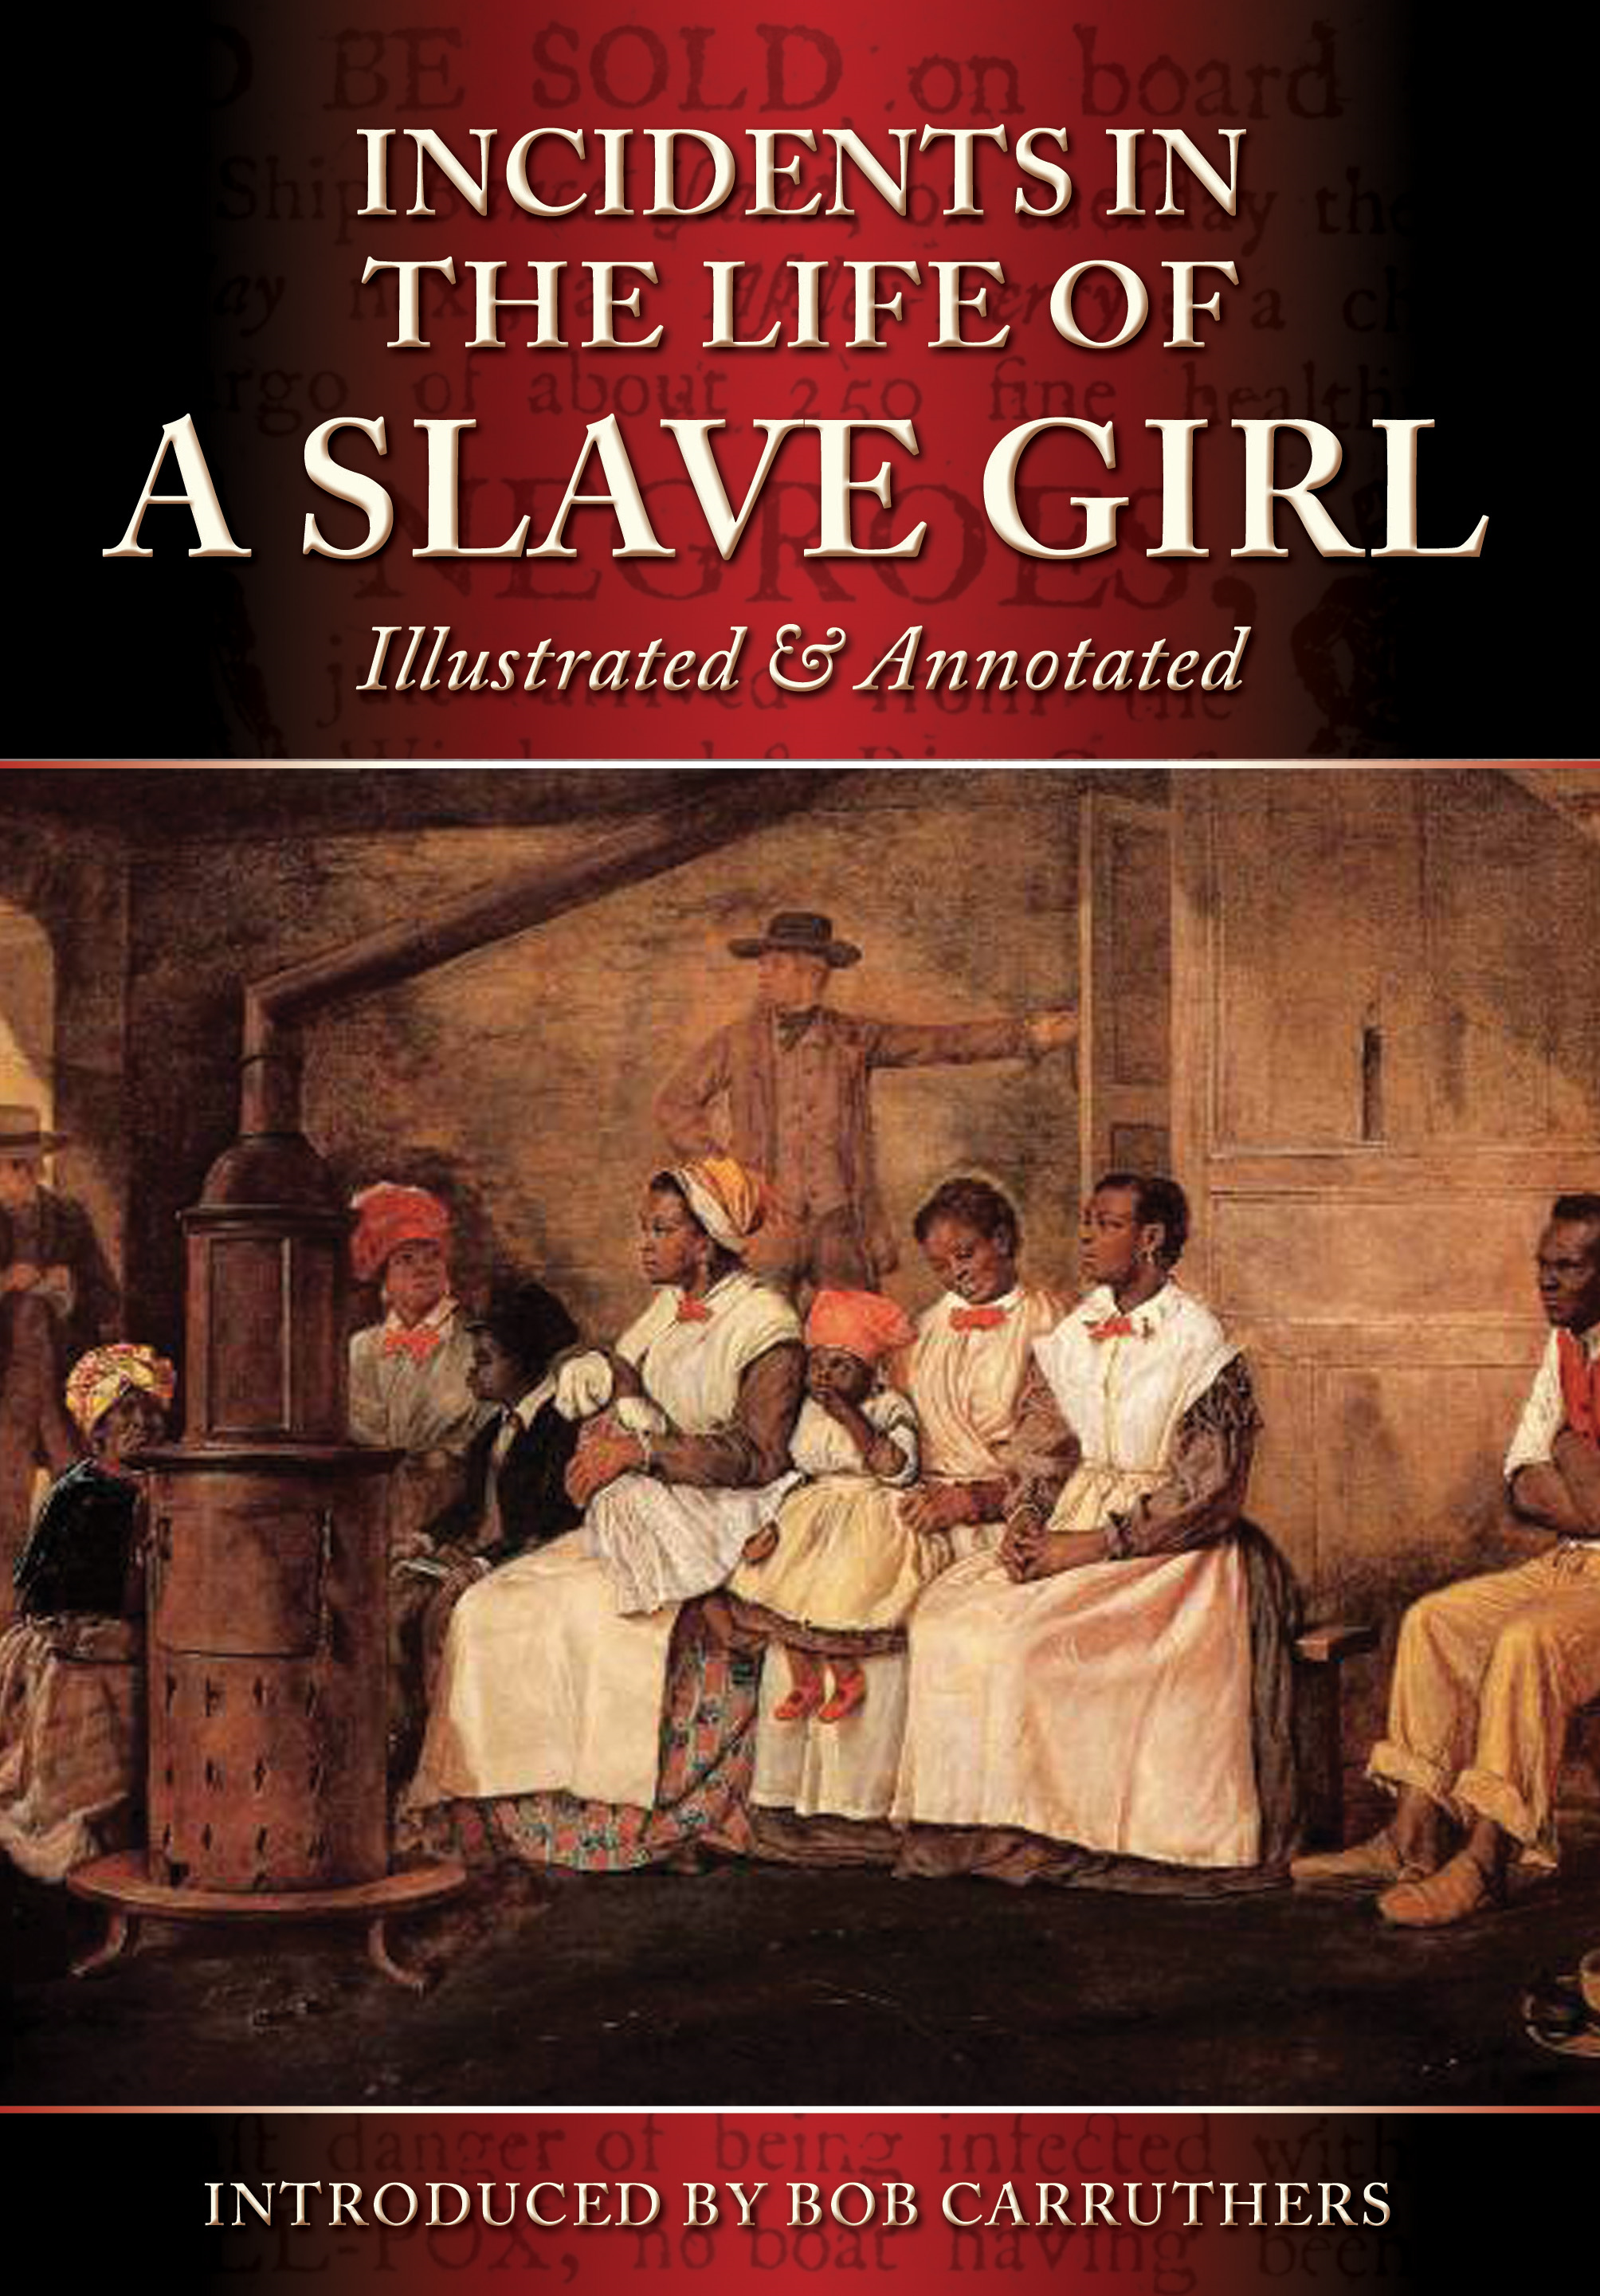 Incidents in the Life of a Slave Girl: Illustrated and Annotated